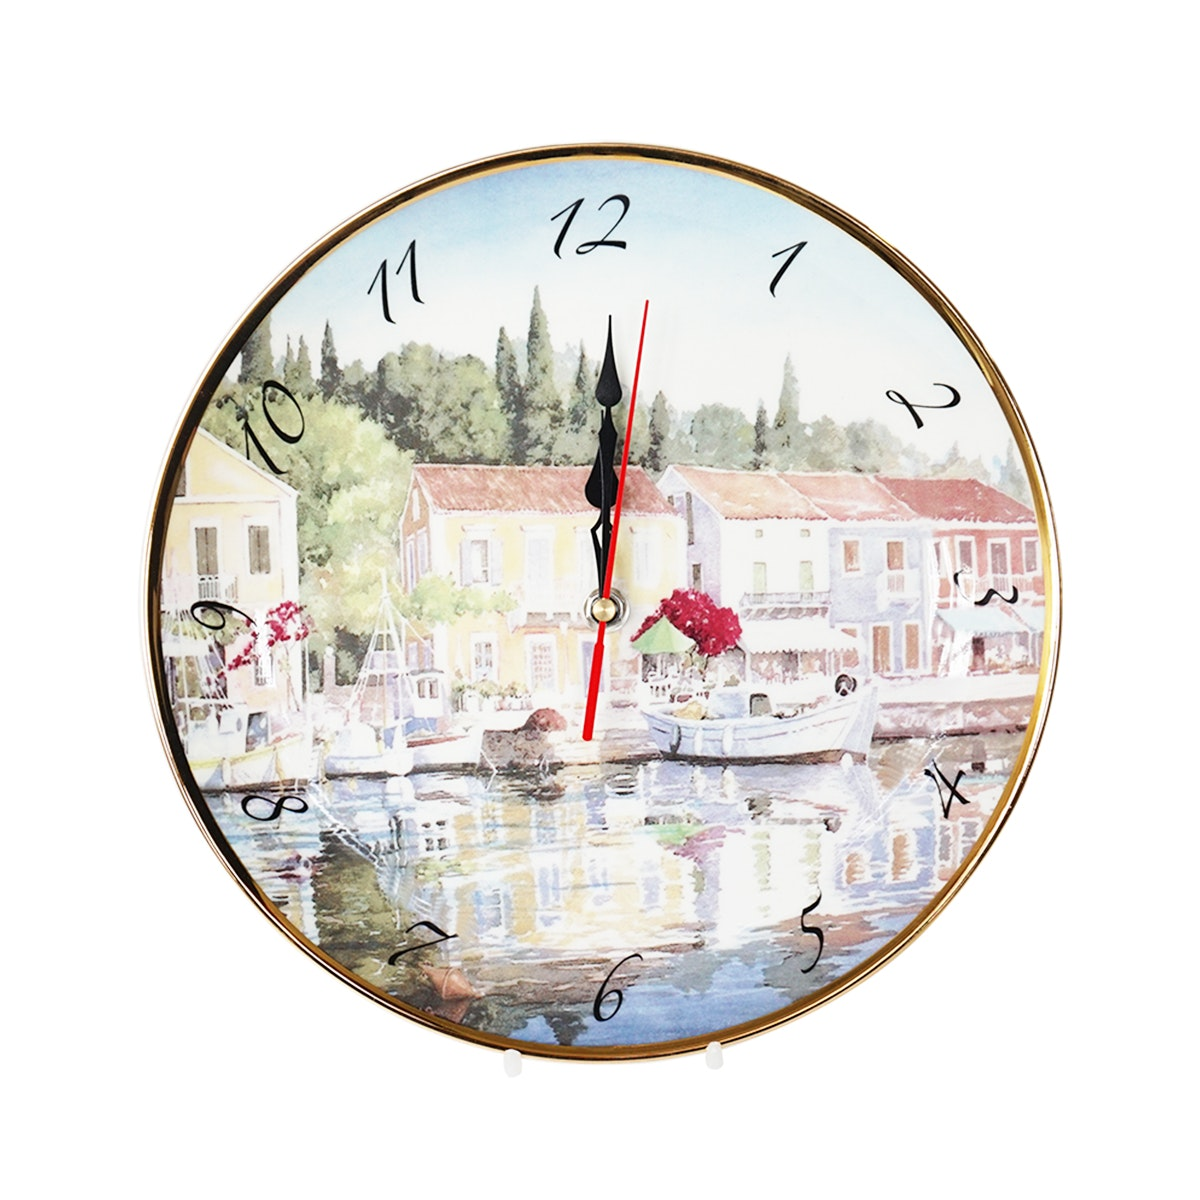 Saint James Premium Tableware Ship 2 Clock Plate